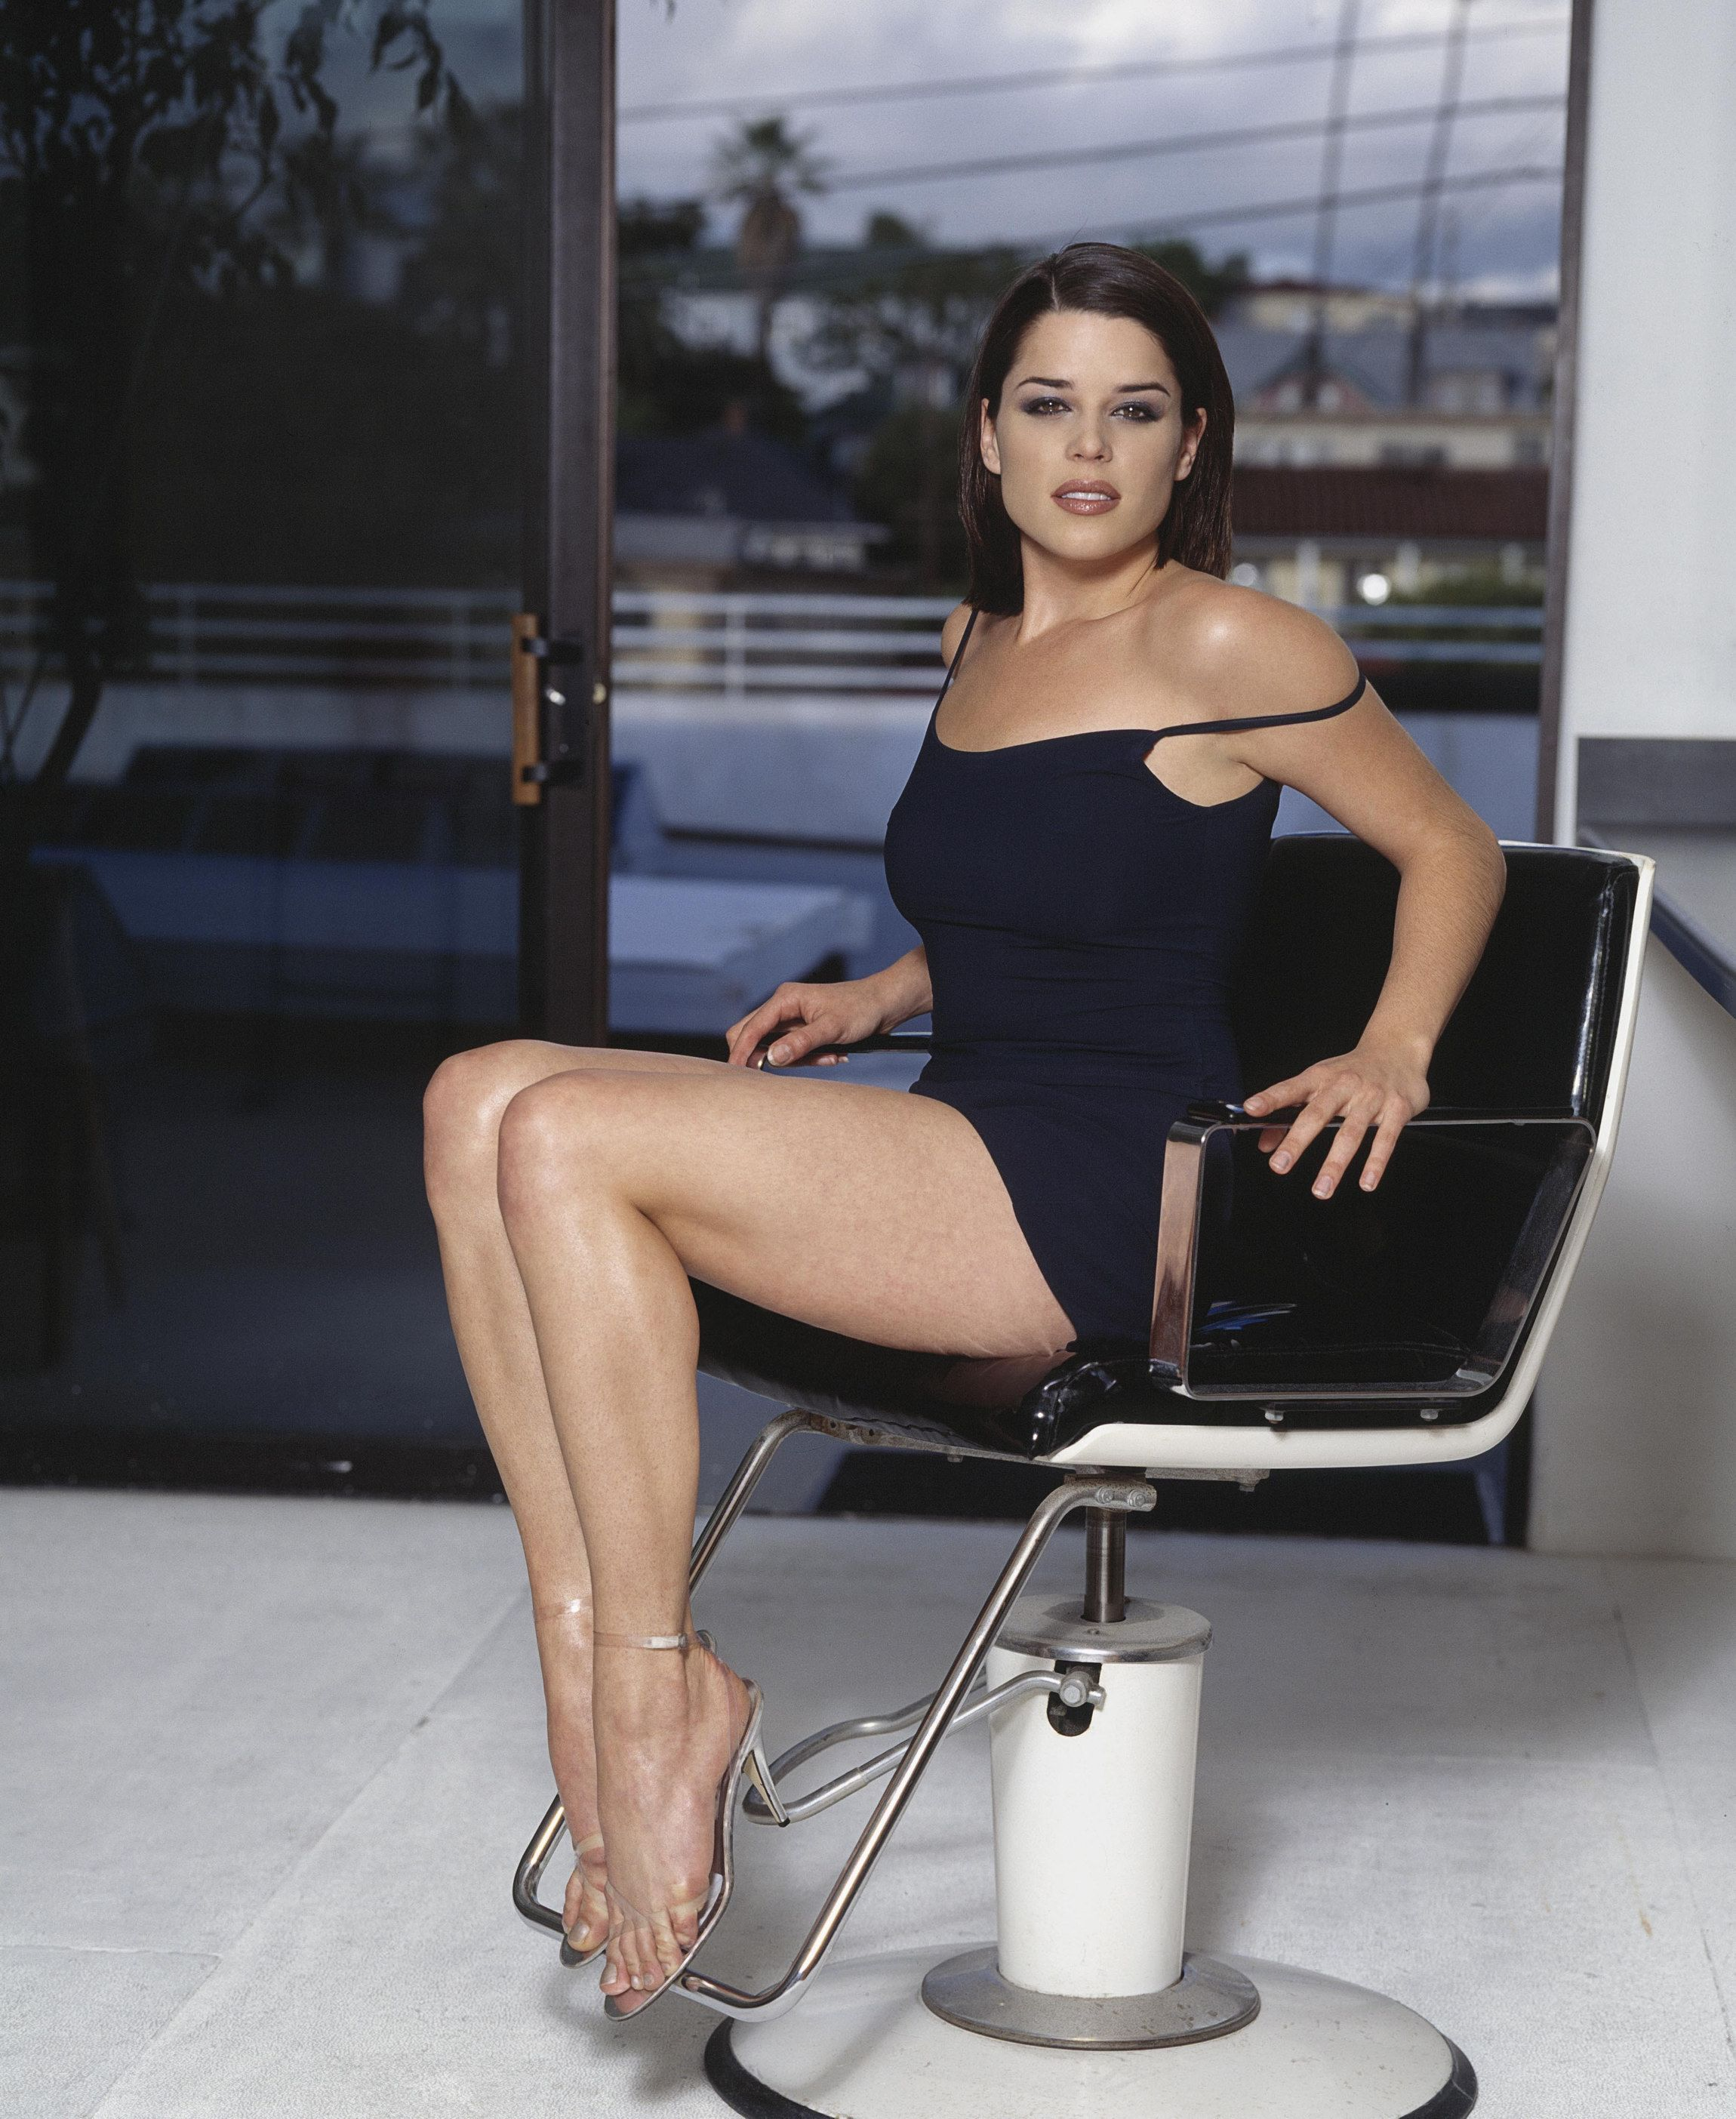 Neve campbell hat job naked nude